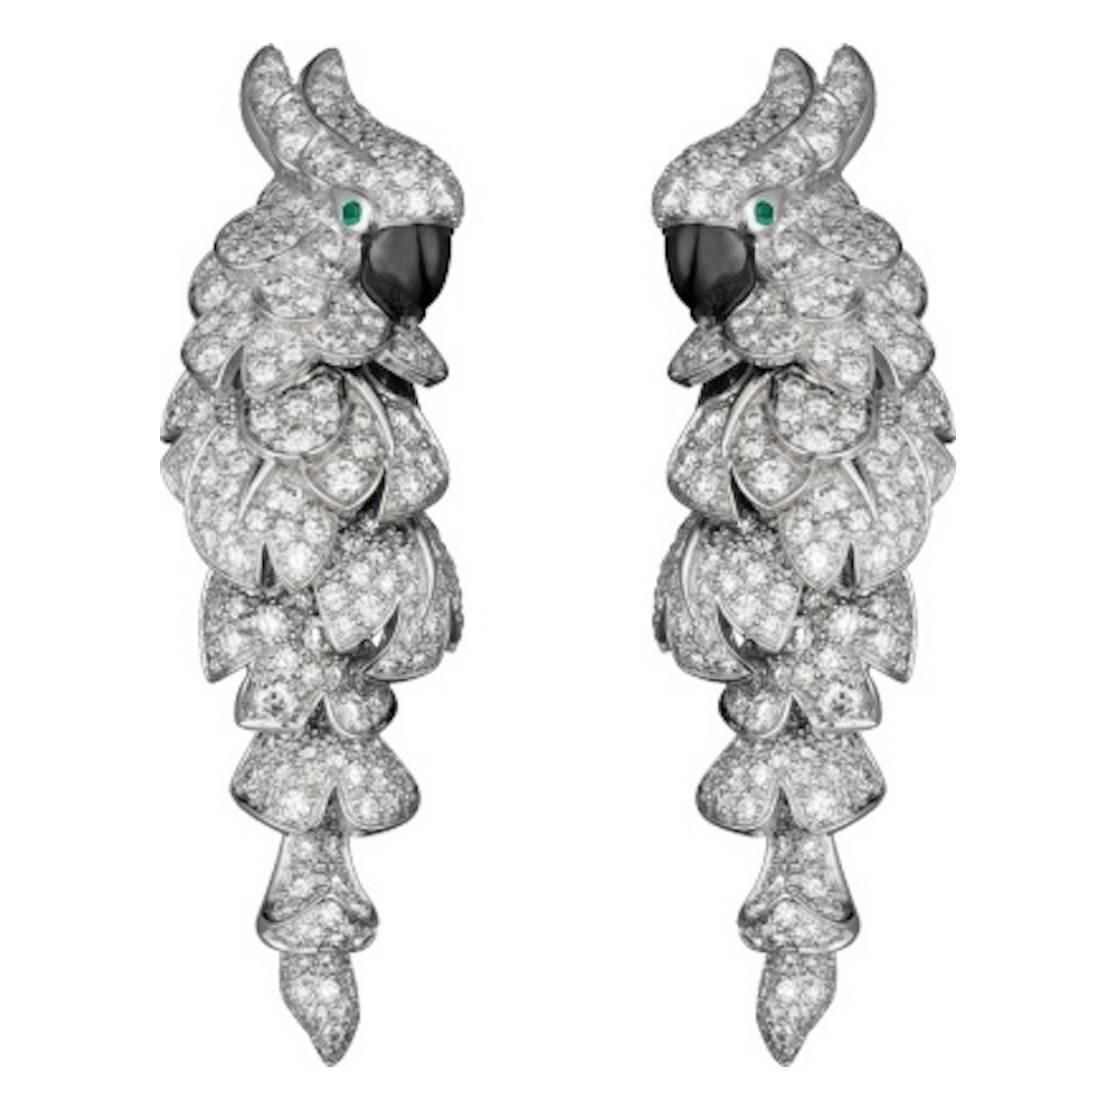 8d4c52957682 Cartier Fauna and Flora Diamond Gold Parrot Earrings. CARTIER Fauna   Flora  Parrot décor Earrings